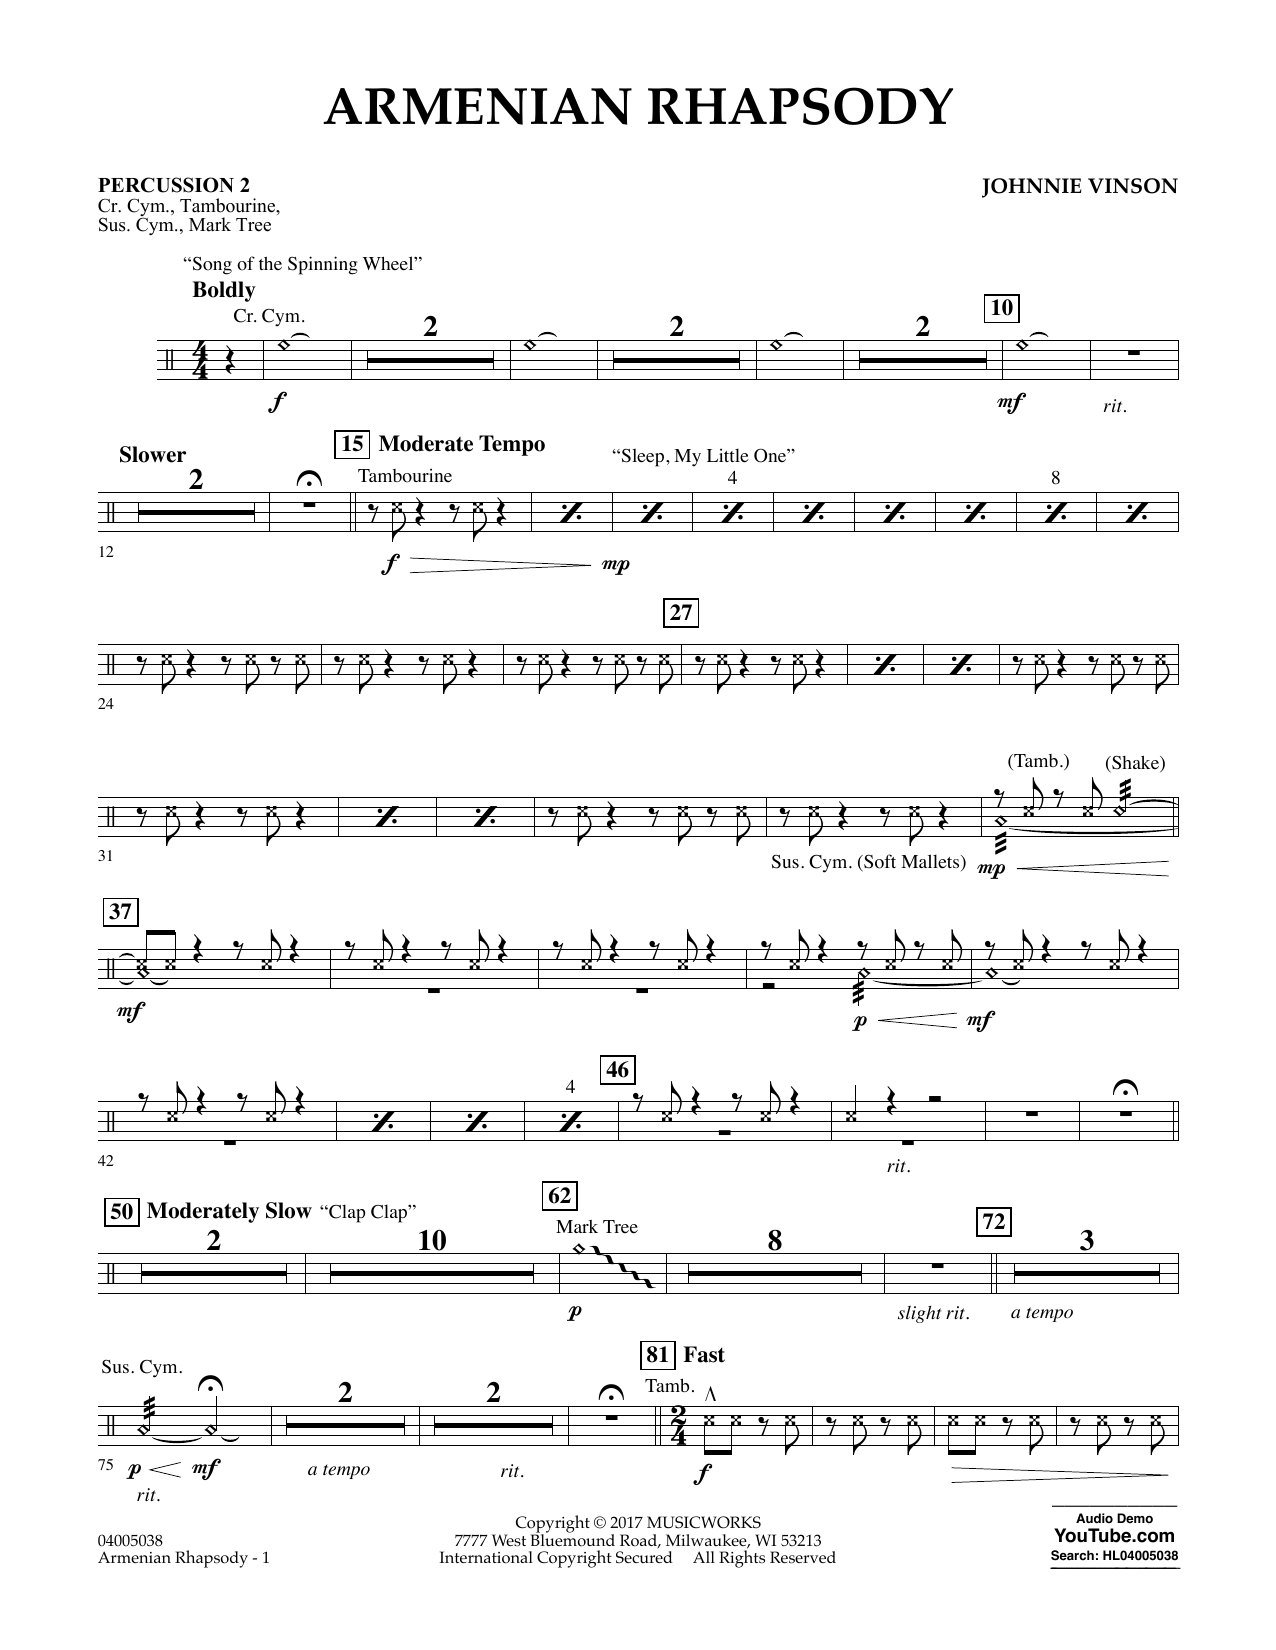 Johnnie Vinson Armenian Rhapsody - Percussion 2 sheet music notes and chords. Download Printable PDF.